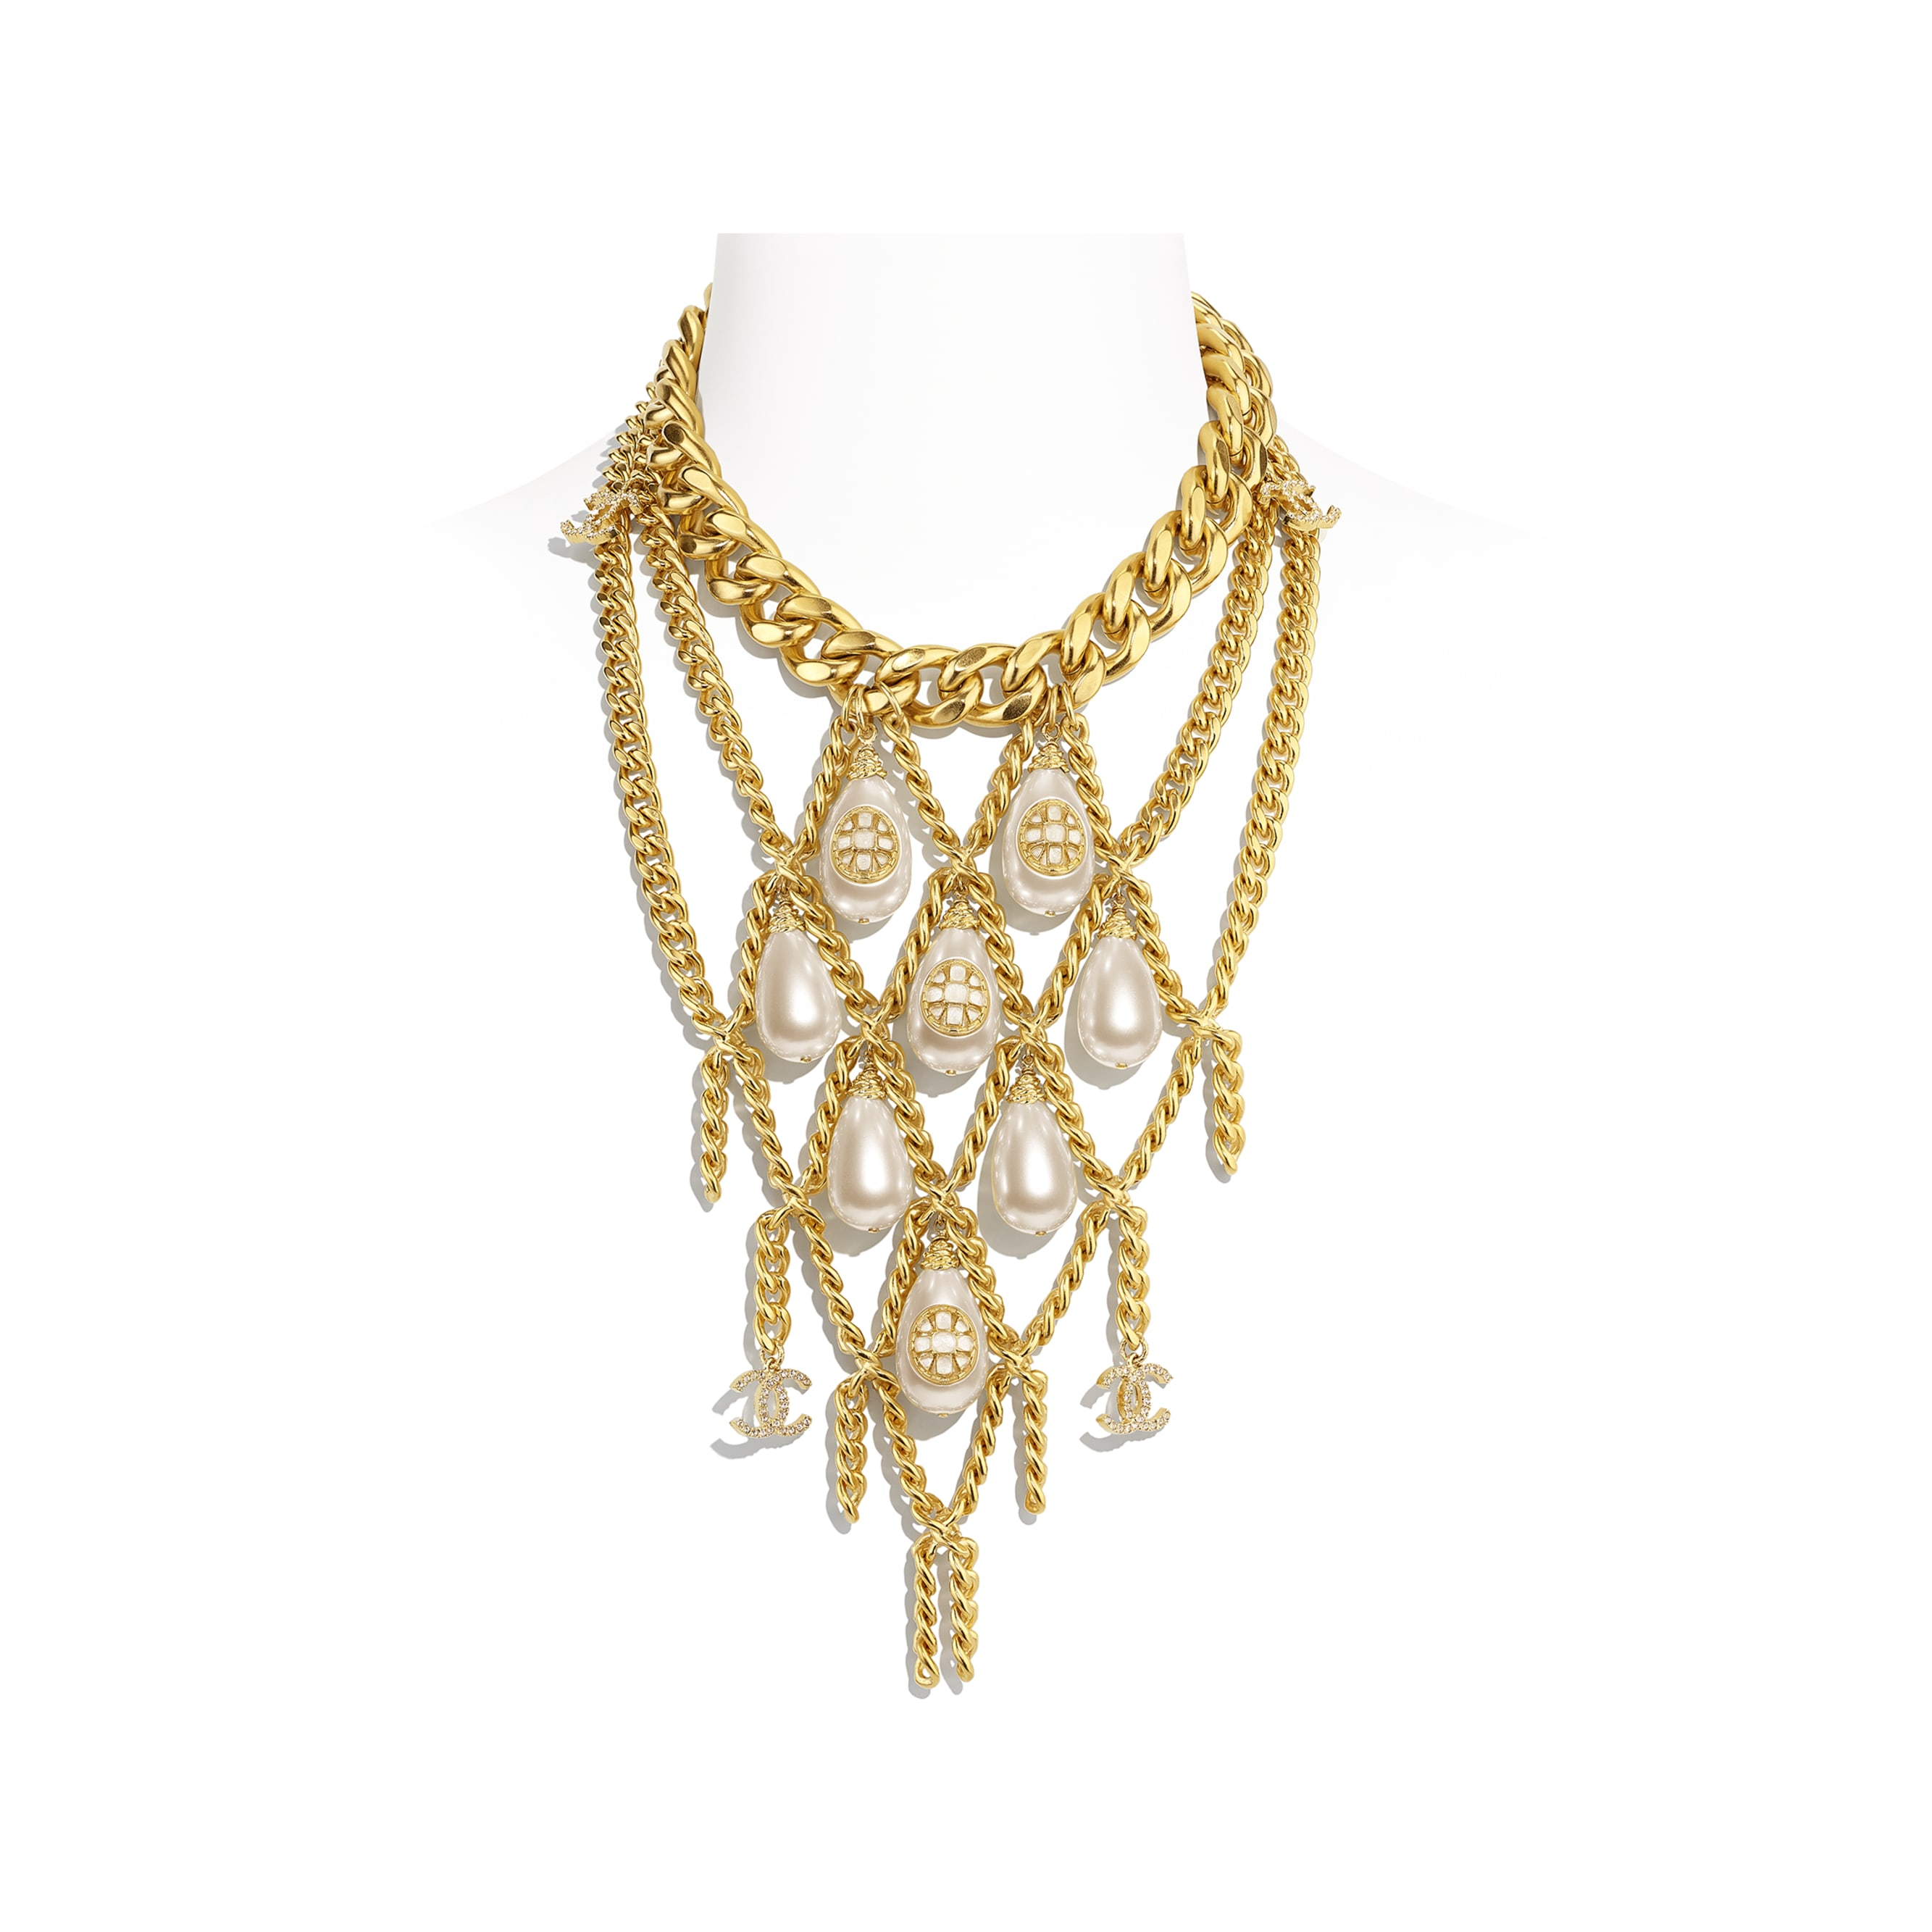 Necklace - Gold, Pearly White & Crystal - Metal, imitation pearls, diamanté  & resin - CHANEL - Default view - see standard sized version